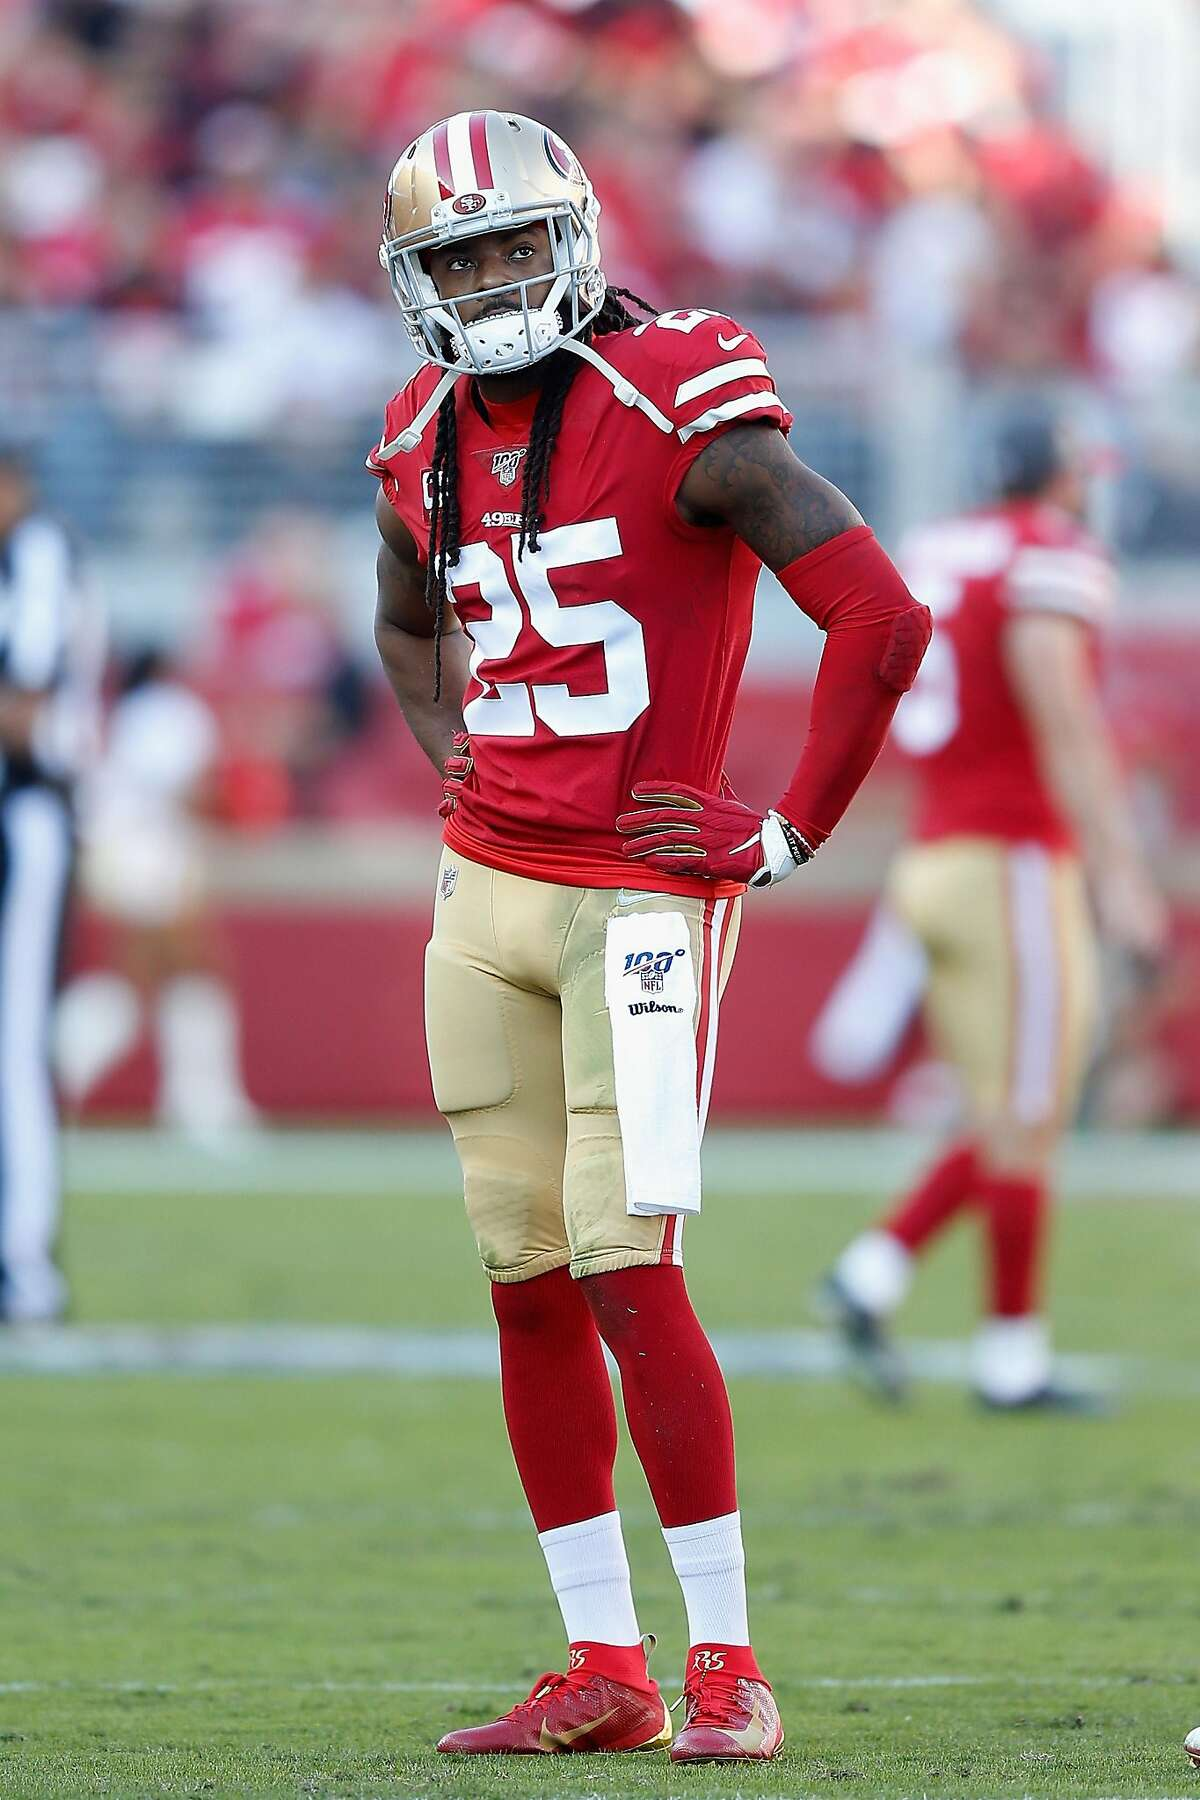 Cornerback Richard Sherman #25 of the San Francisco 49ers reacts on the field during the first half of the NFL game against the Arizona Cardinals at Levi's Stadium on November 17, 2019 in Santa Clara, California.